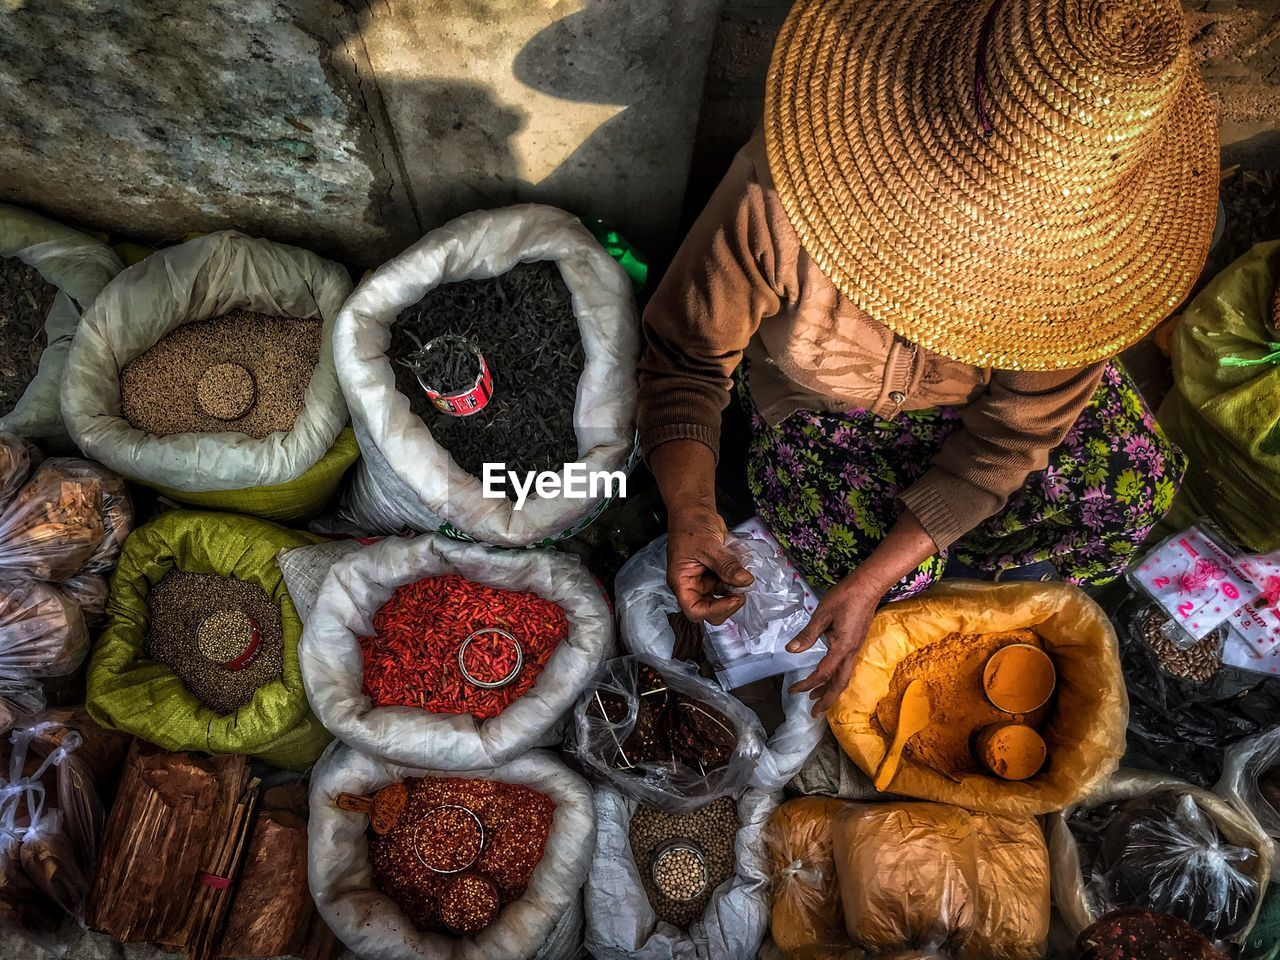 real people, food and drink, food, high angle view, clothing, hat, people, women, day, adult, men, basket, market, choice, large group of objects, for sale, freshness, retail, outdoors